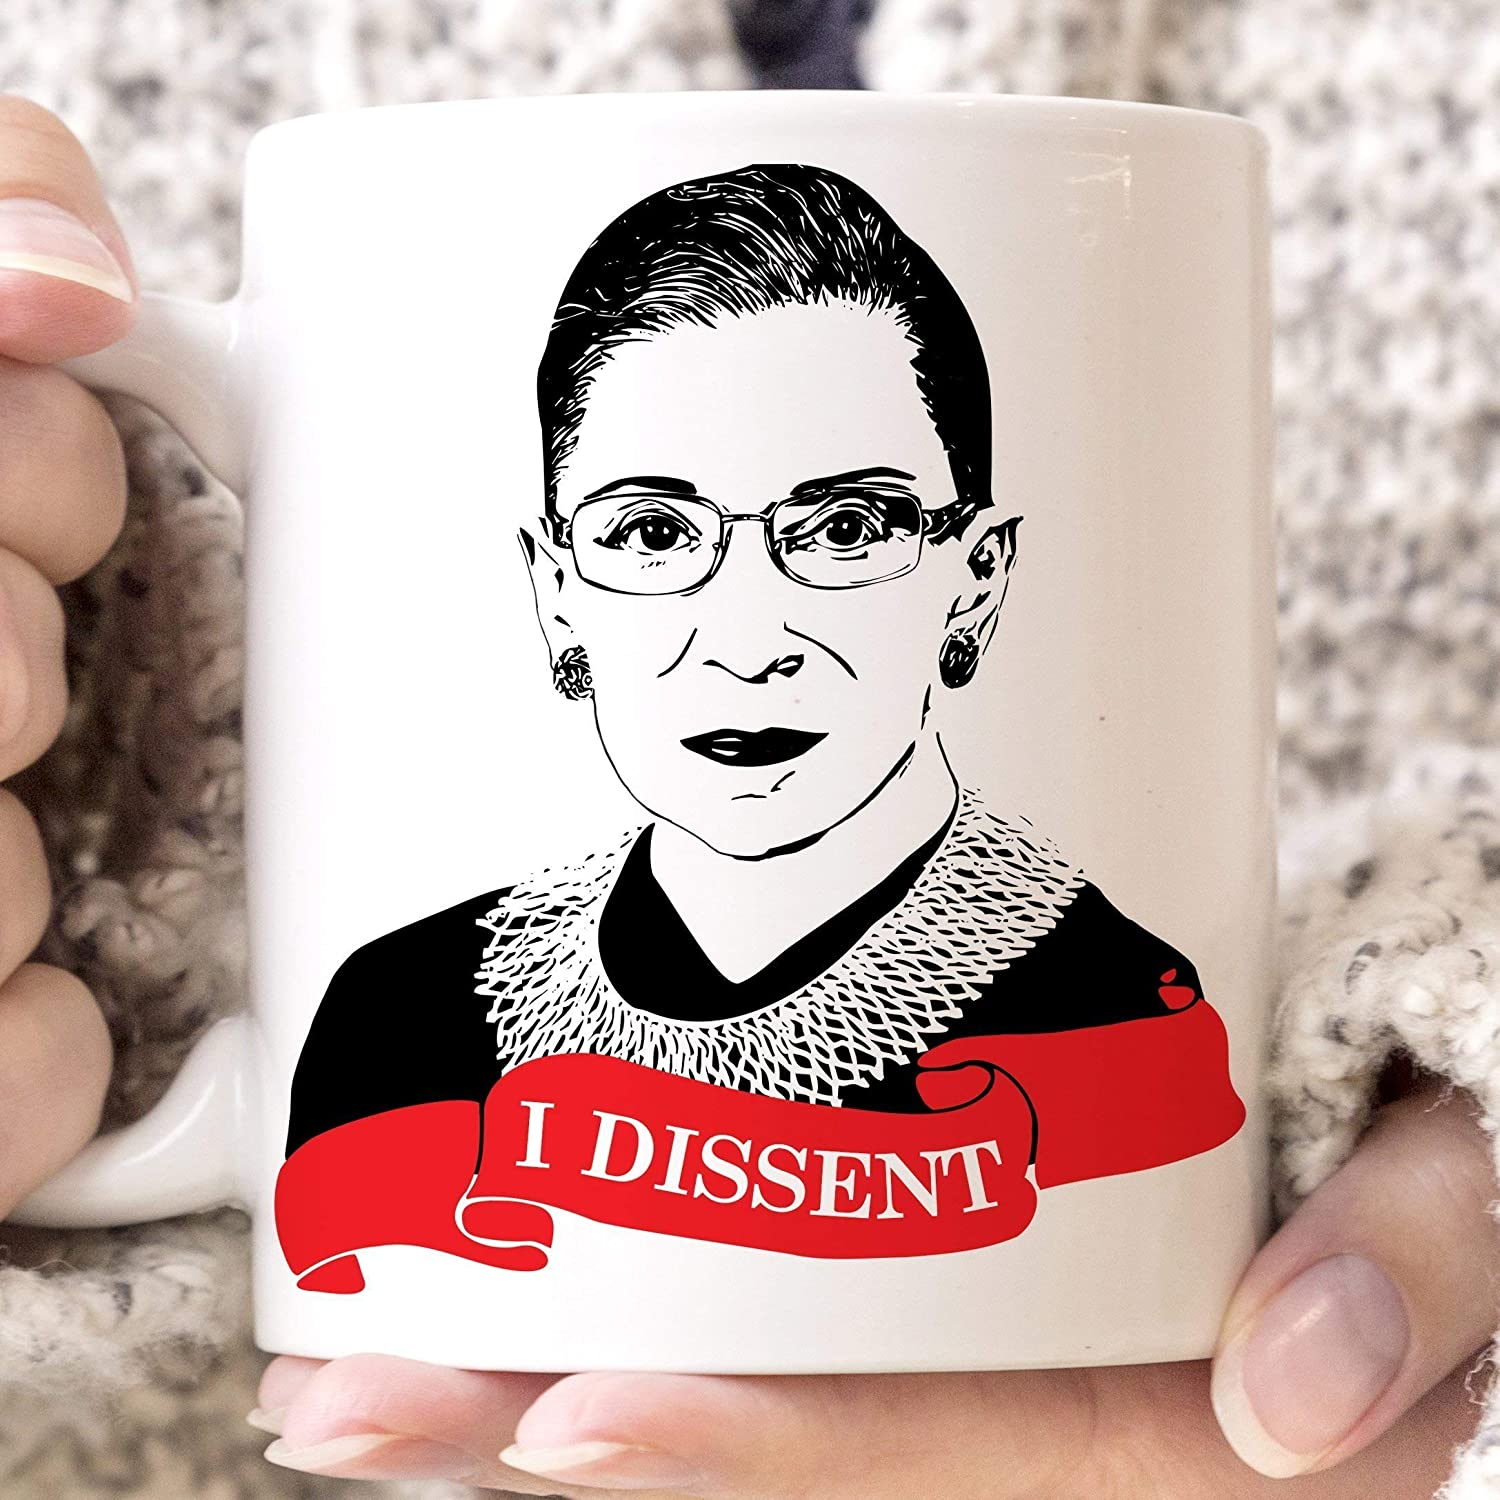 Ruth Bader Ginsburg I Dissent Coffee Mug Microwave Dishwasher Safe Ceramic RBG Cup Notorious RBG